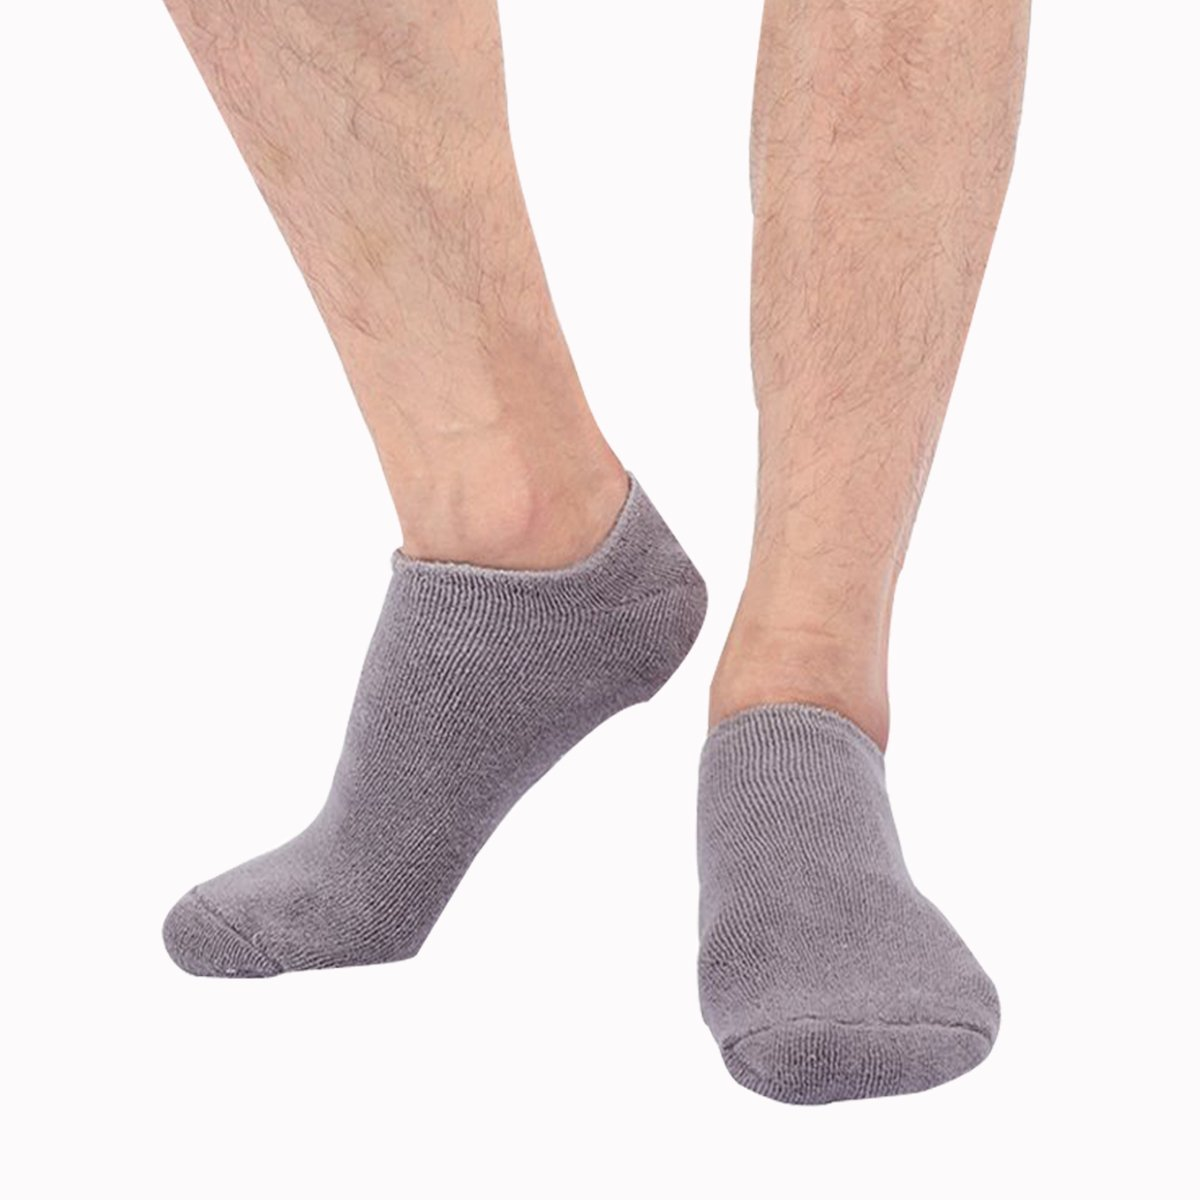 EXPER Moisturizing Gel Spa Socks for Men's Large Feet Size 10-12 Dry Hard Broken Rough Skin Cracked Heel Silicone Humectant Moisturizer Heel Socks (Grey)